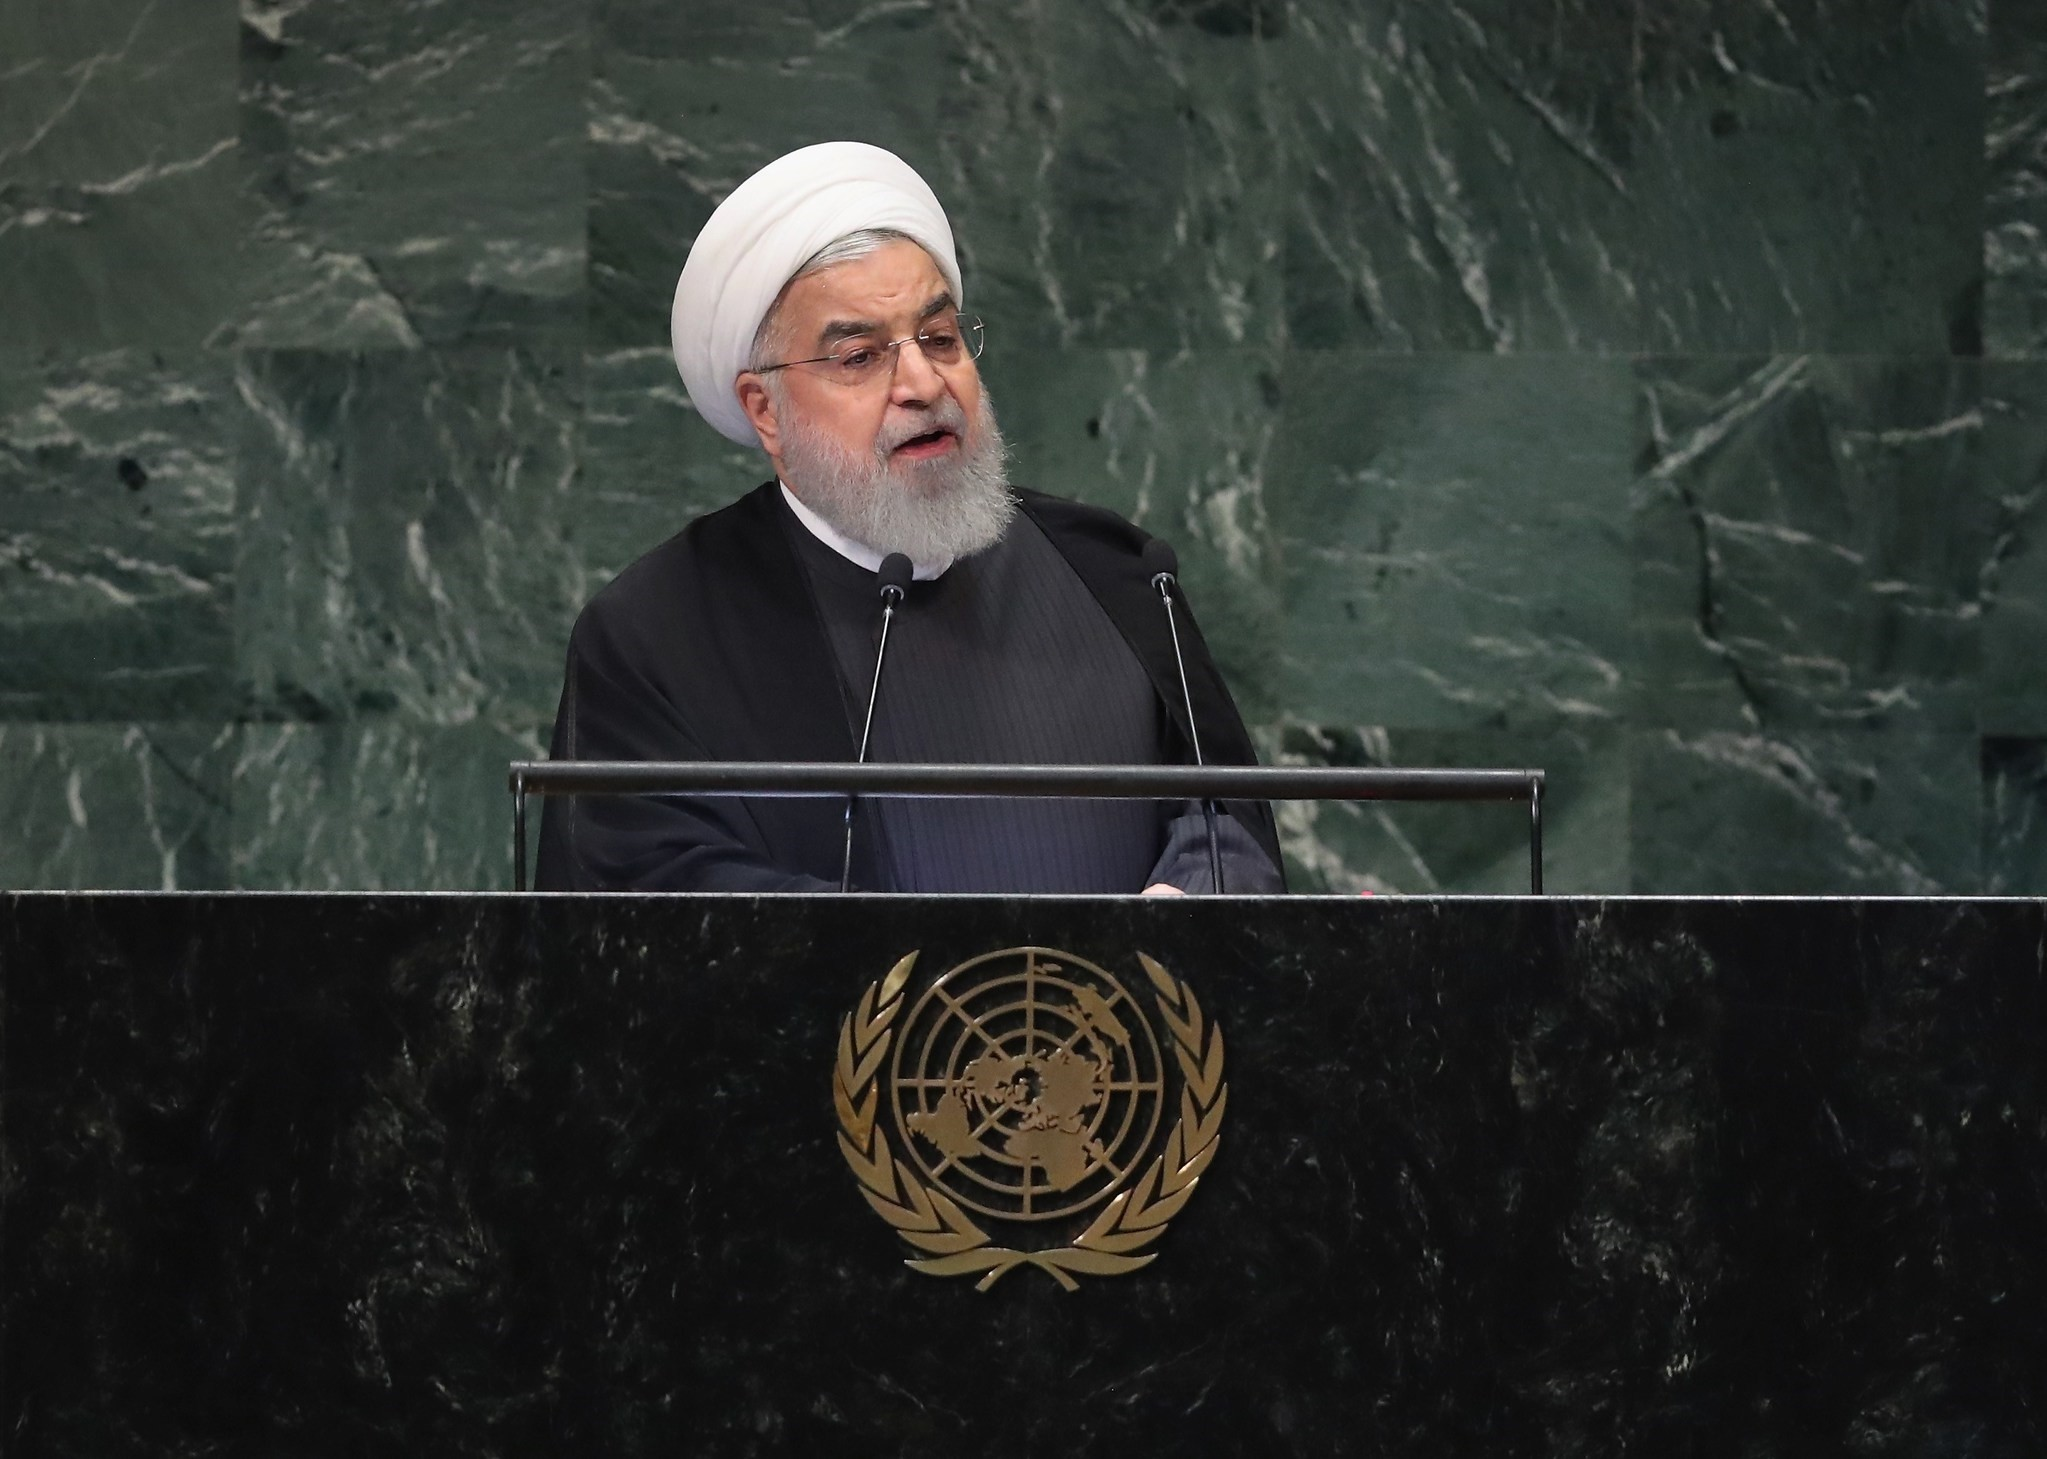 President of Iran Hassan Rouhani addresses the United Nations General Assembly on September 25, 2018 in New York City. (AFP Photo)